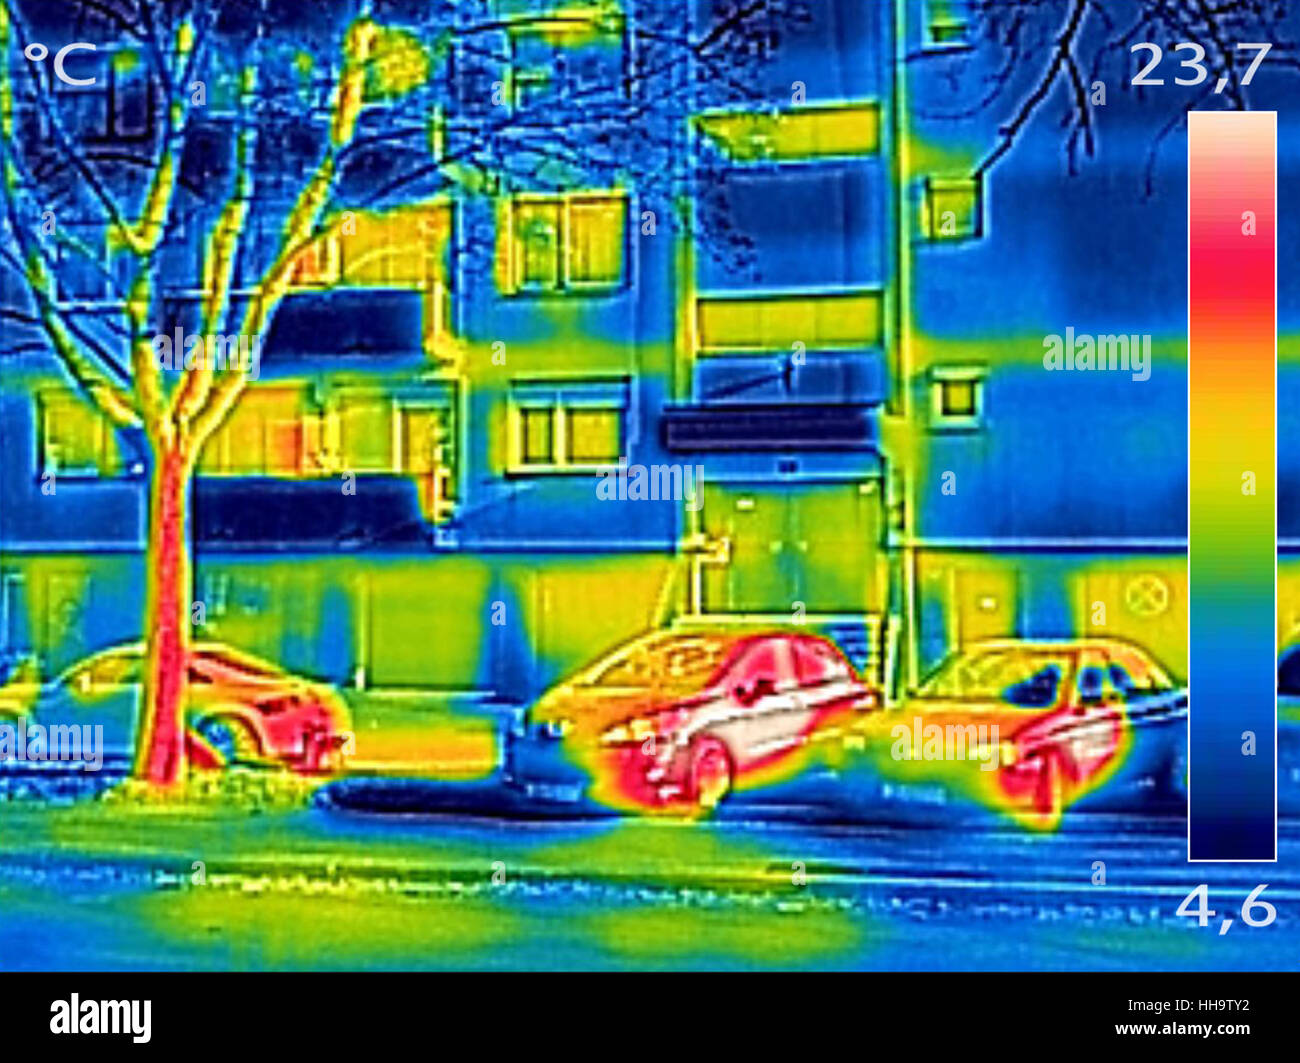 Thermal image showing parked cars in front of the apartment building - Stock Image